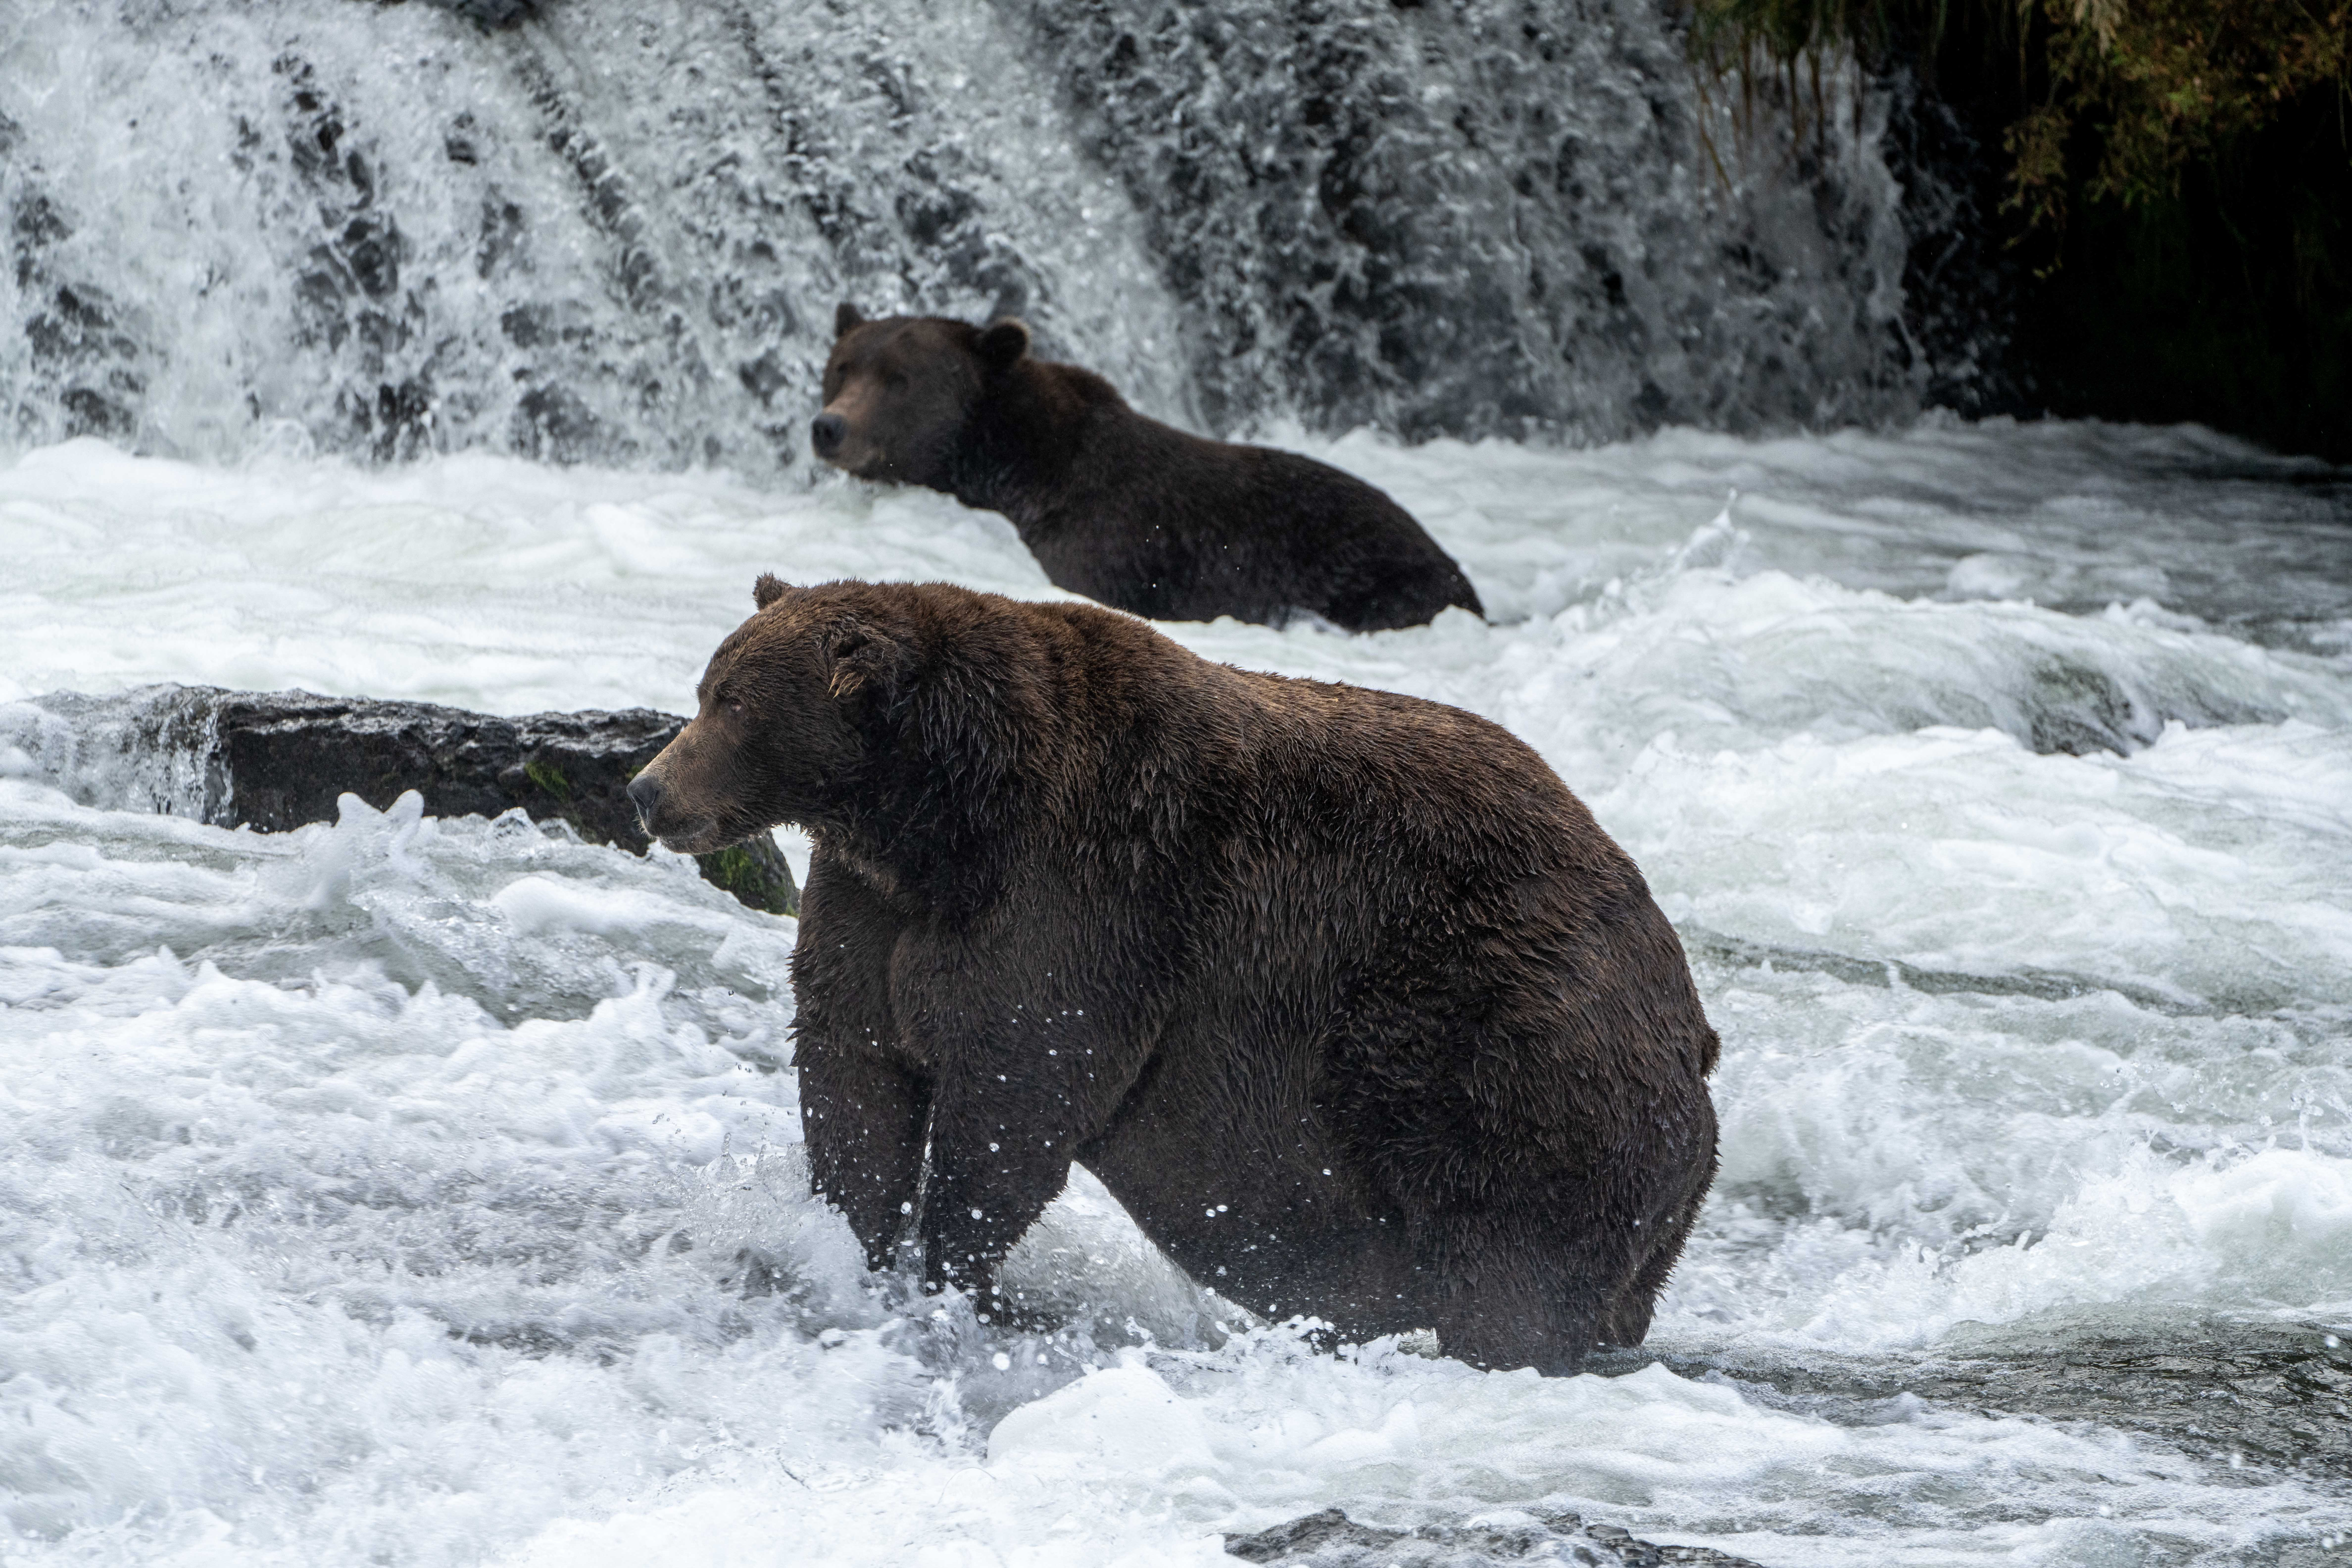 Two brown bears stand in the water.